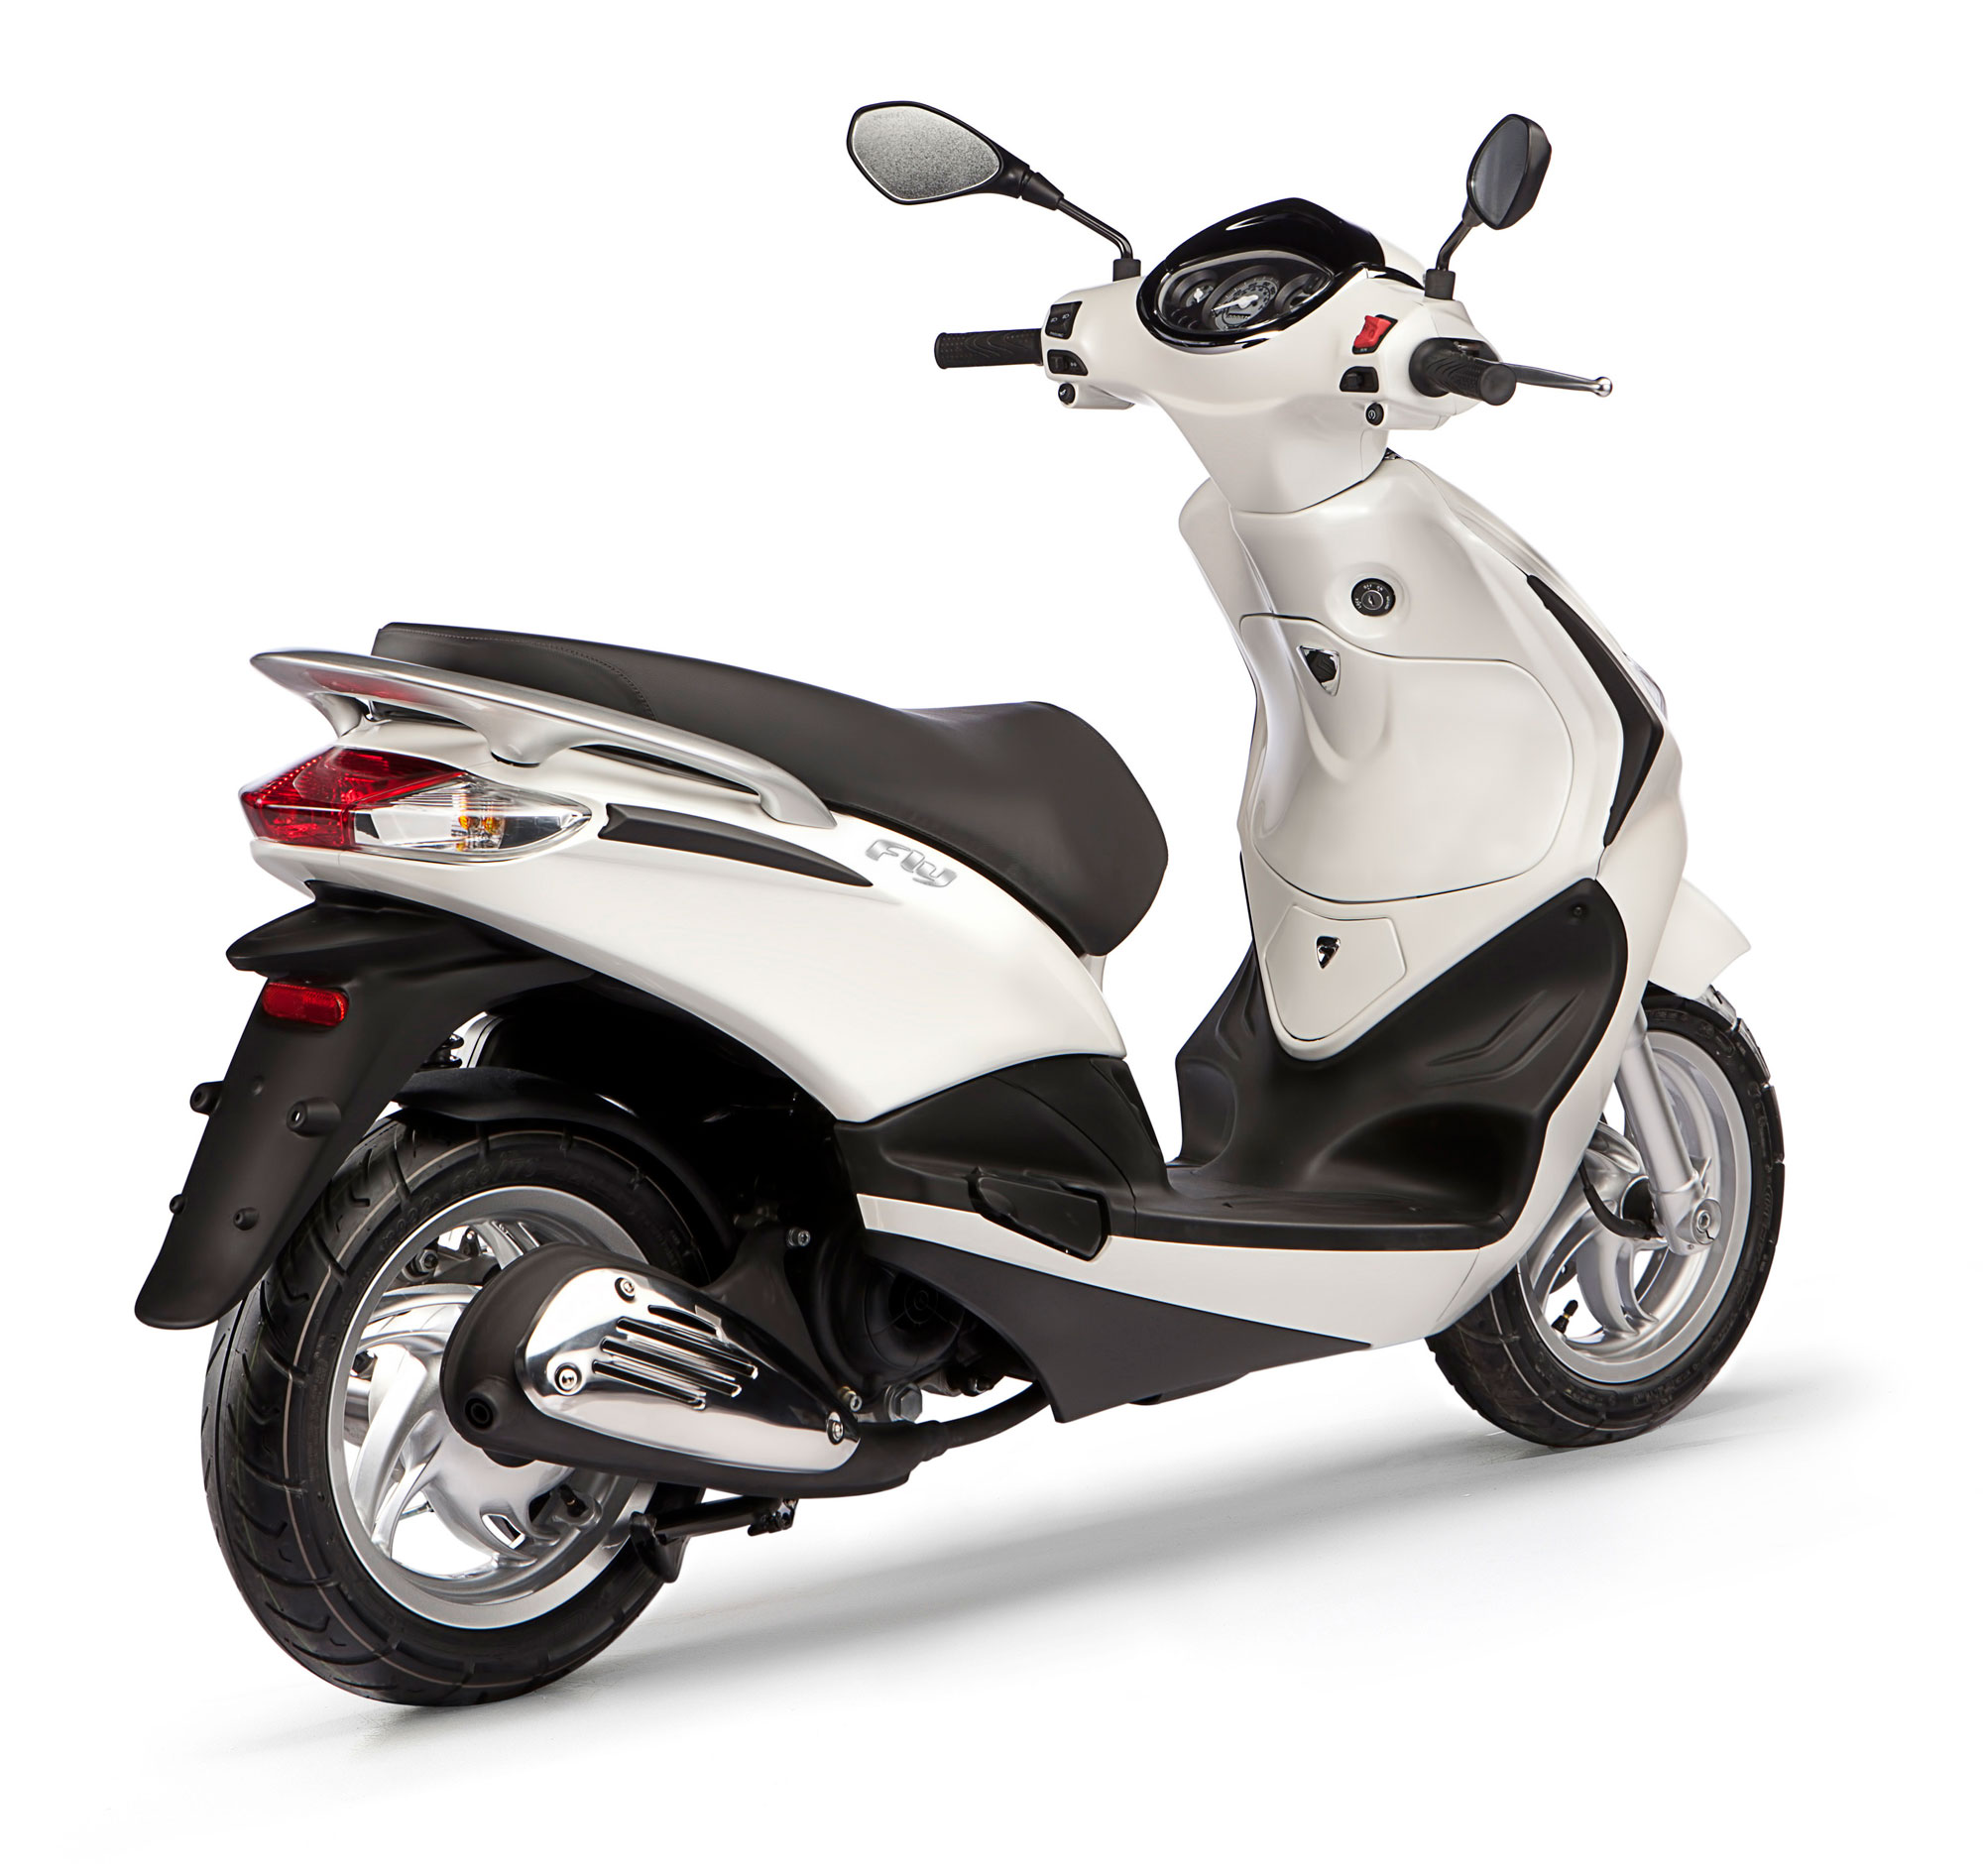 2012 Piaggio Fly 50 4V | Top Speed. »